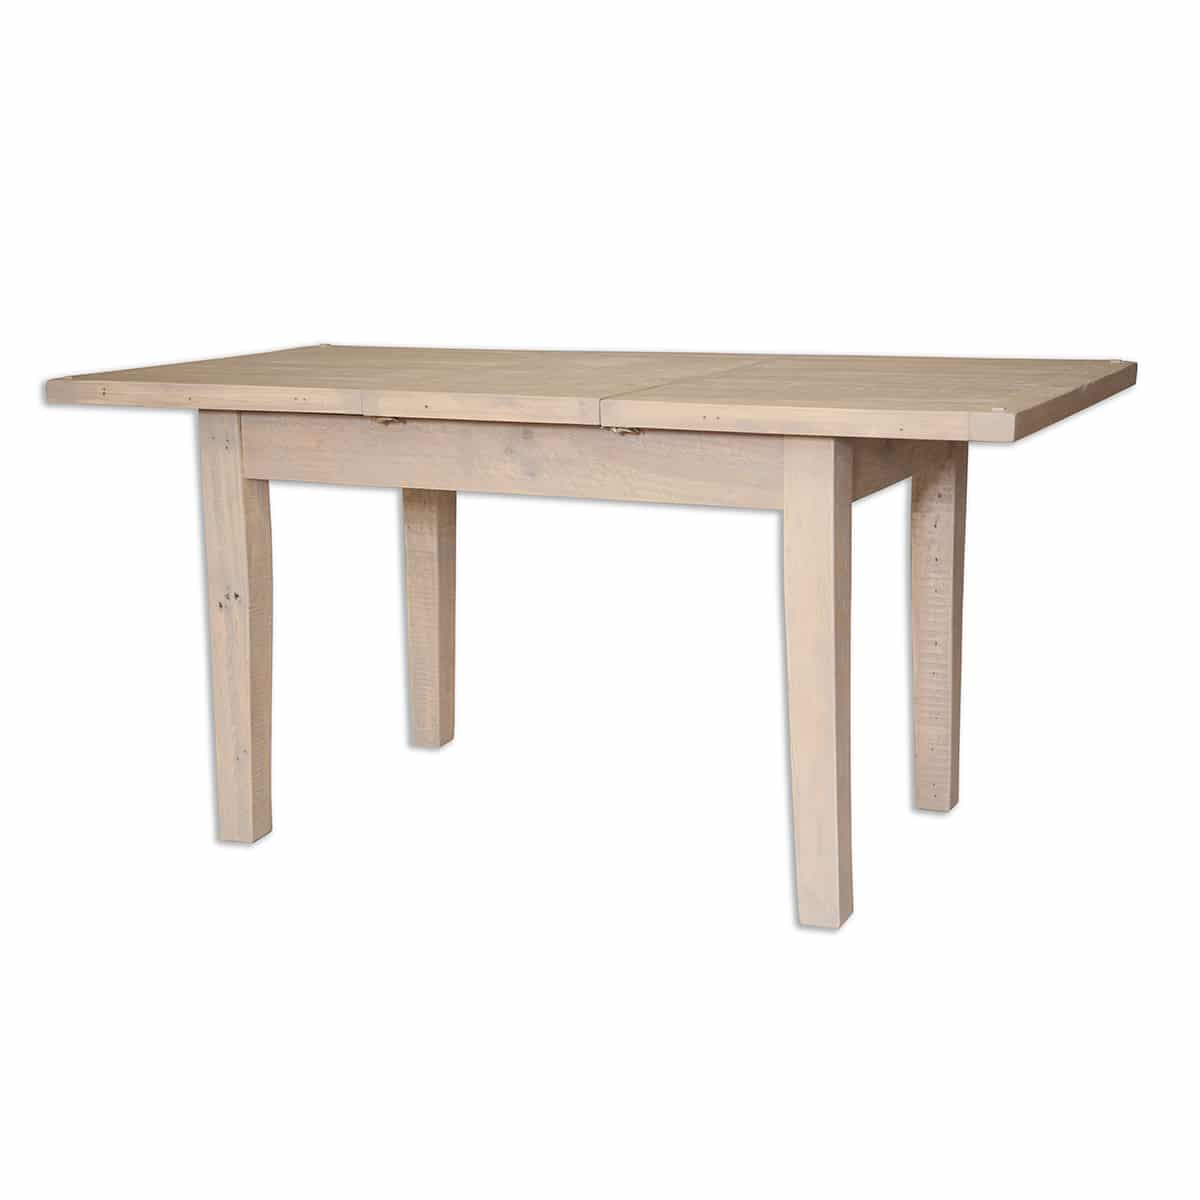 The Witterings Large Extending Dining Table - WIT271b